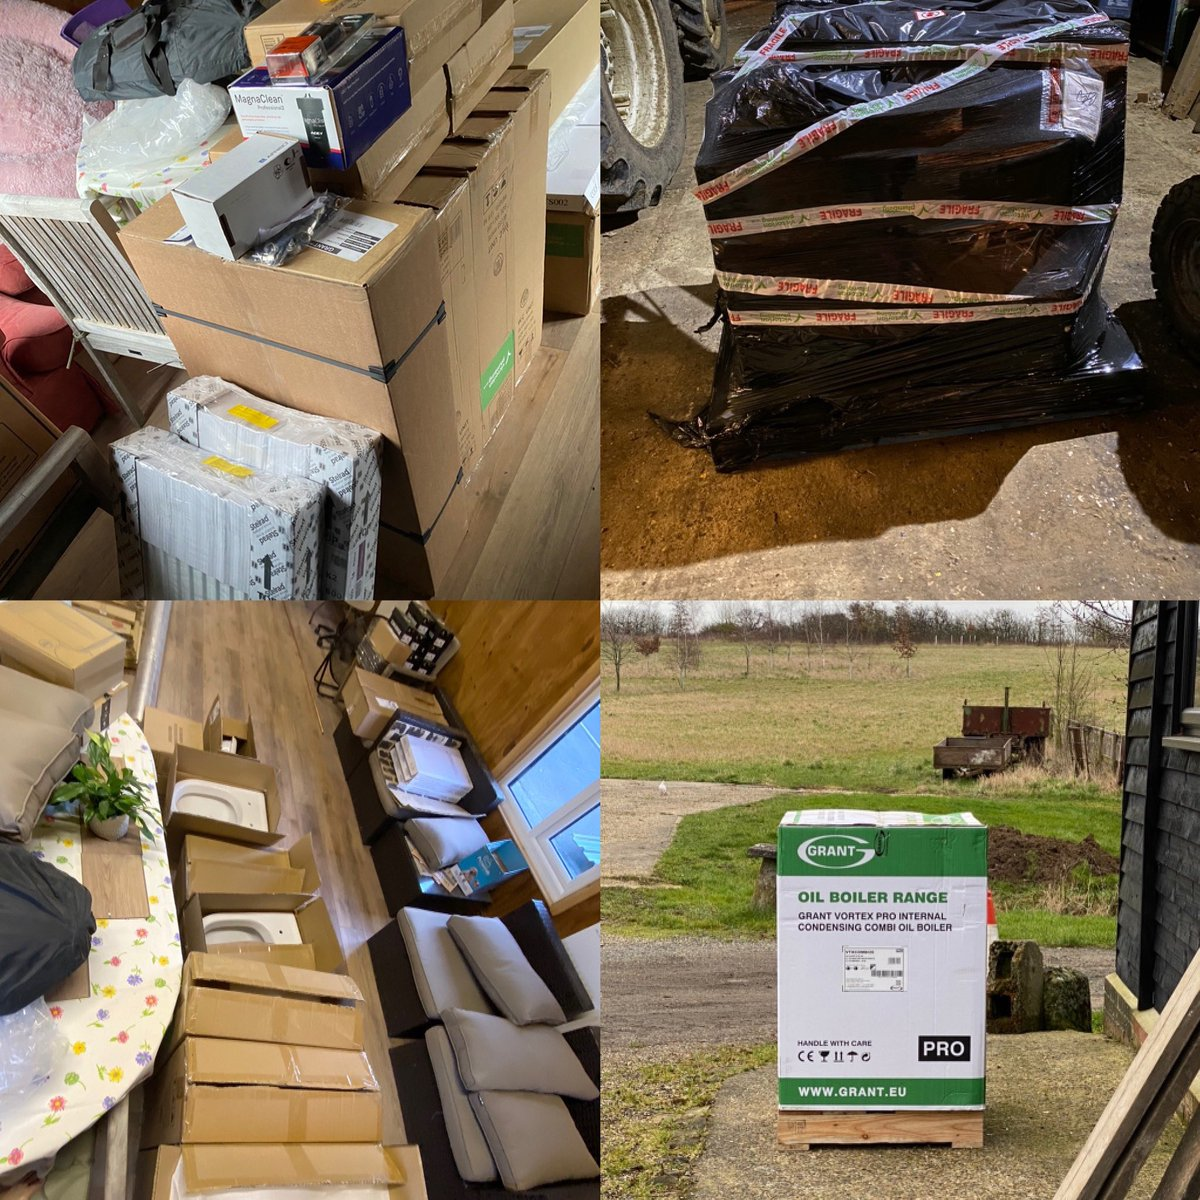 💜 More deliveries are arriving for fitting out the Reiki Room facilities. 💜 #blessings #peace #mindfulness #spirituality #energy #meditation #love #thoughtfulness #events #teaching  #gratitude #reiki #jikiden #jikidenreiki #conference #colour #therapy